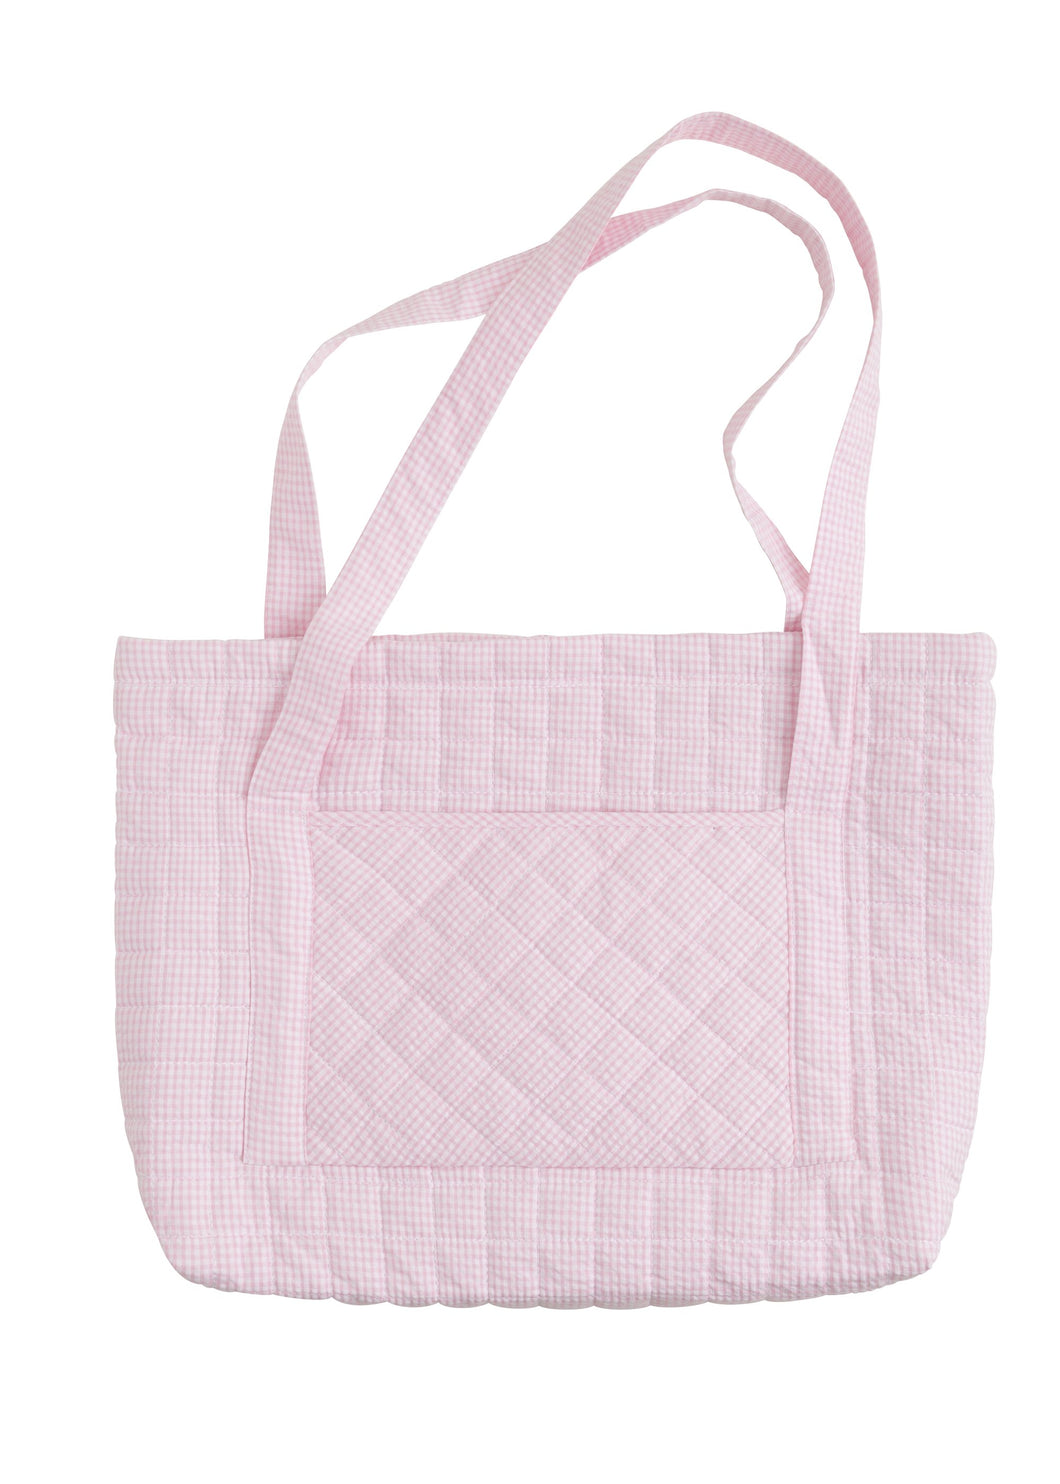 LE Pink Quilted Tote Bag